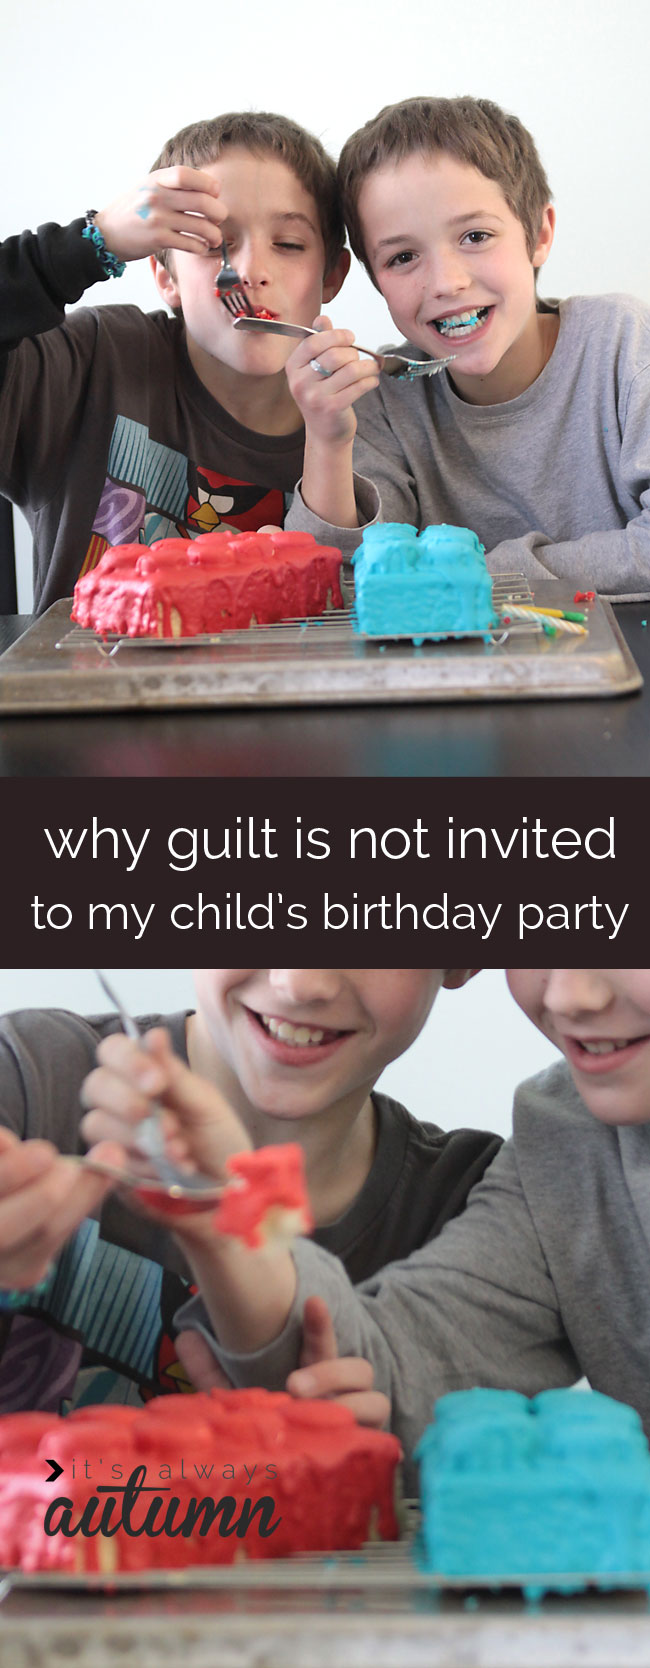 great post on why we don't need to feel guilty if we don't plan crazy amazing birthday parties and just have fun instead